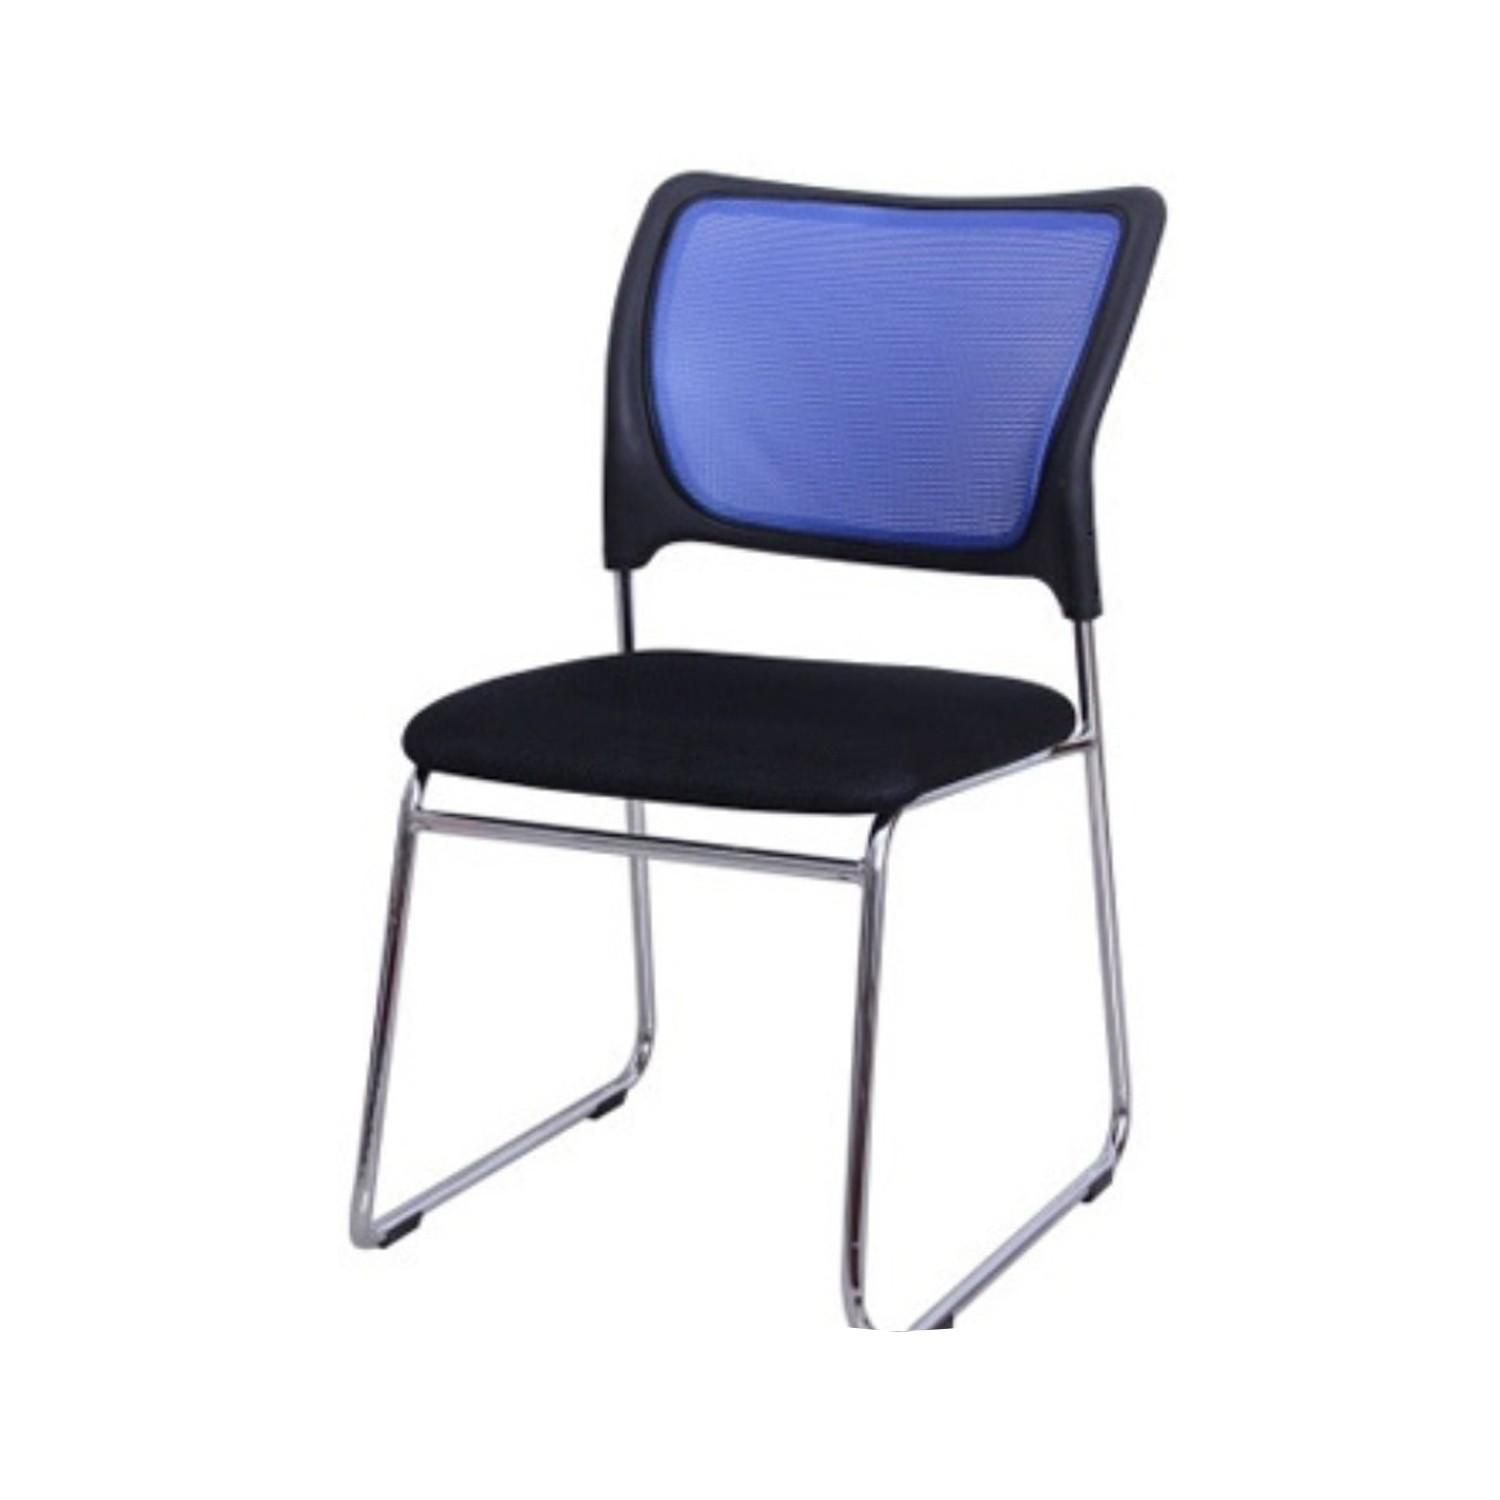 [FurnitureMartSG] Coretta Office Chair _FREE DELIVERY + FREE INSTALLATION